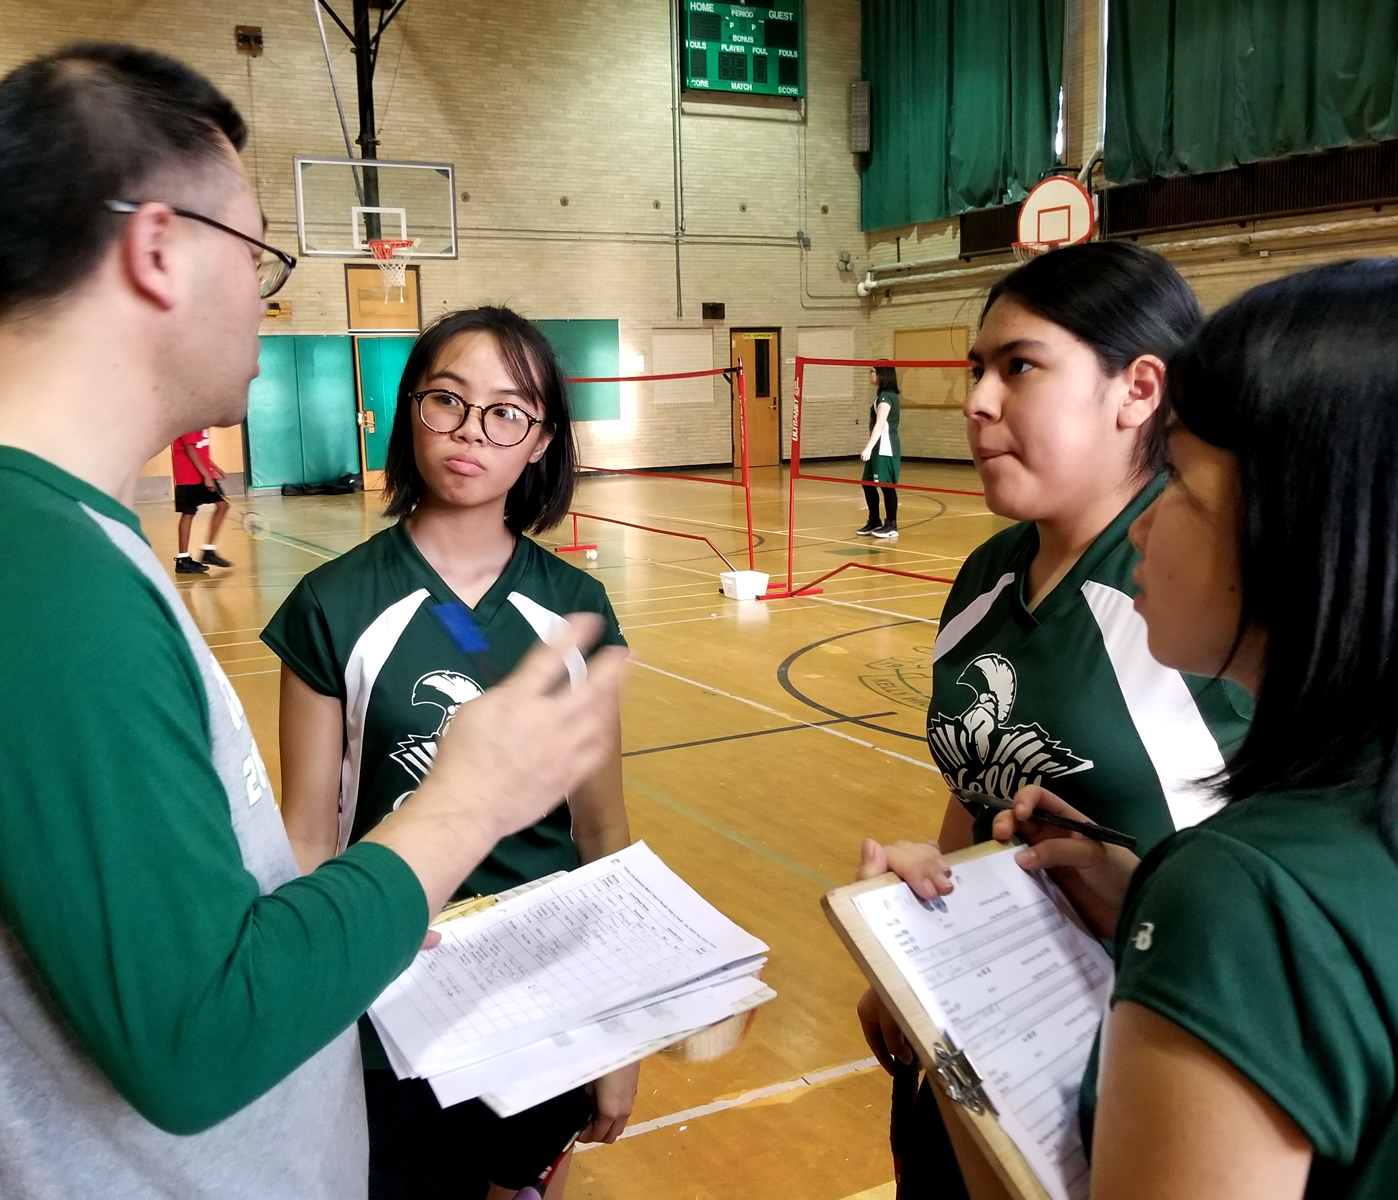 Kelly High School badminton coach Dongyu Bao talks to his players before a game. Dao says offering a sport played in China has helped his Chinese immigrant students feel at home at Kelly. (Linda Lutton/WBEZ)